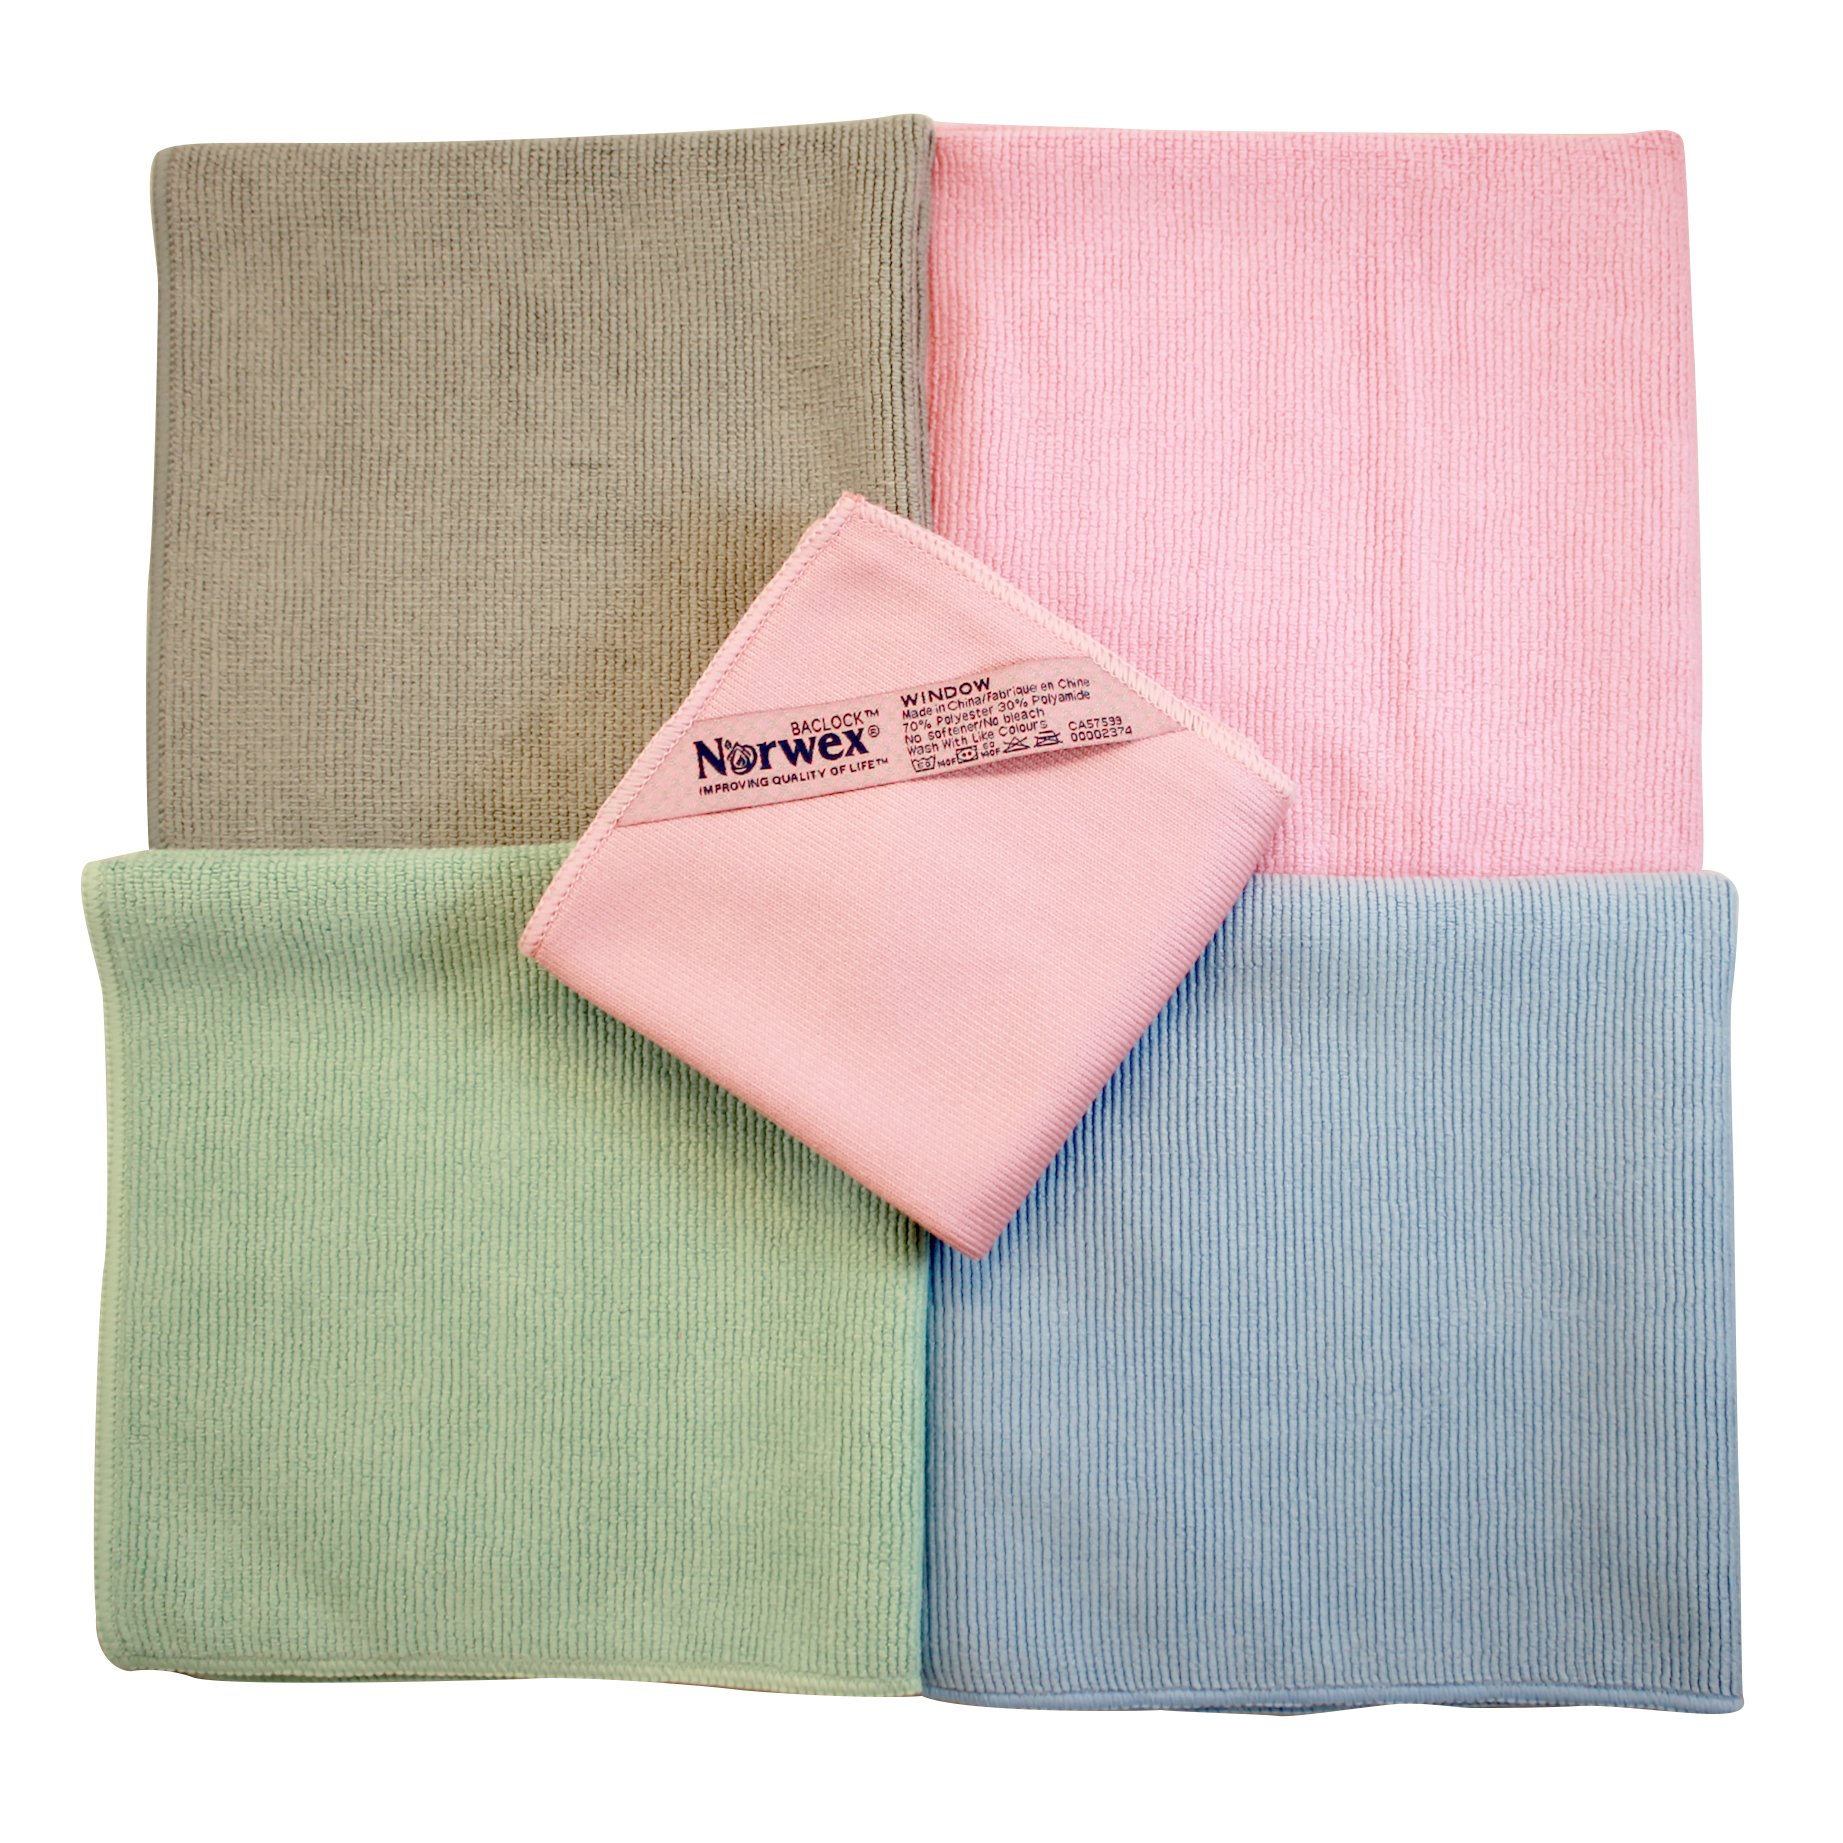 Norwex Microfiber Rainbow Package Plus with 4 Enviro Cloths & 1 Window Polishing Cloth by Norwex (Image #2)